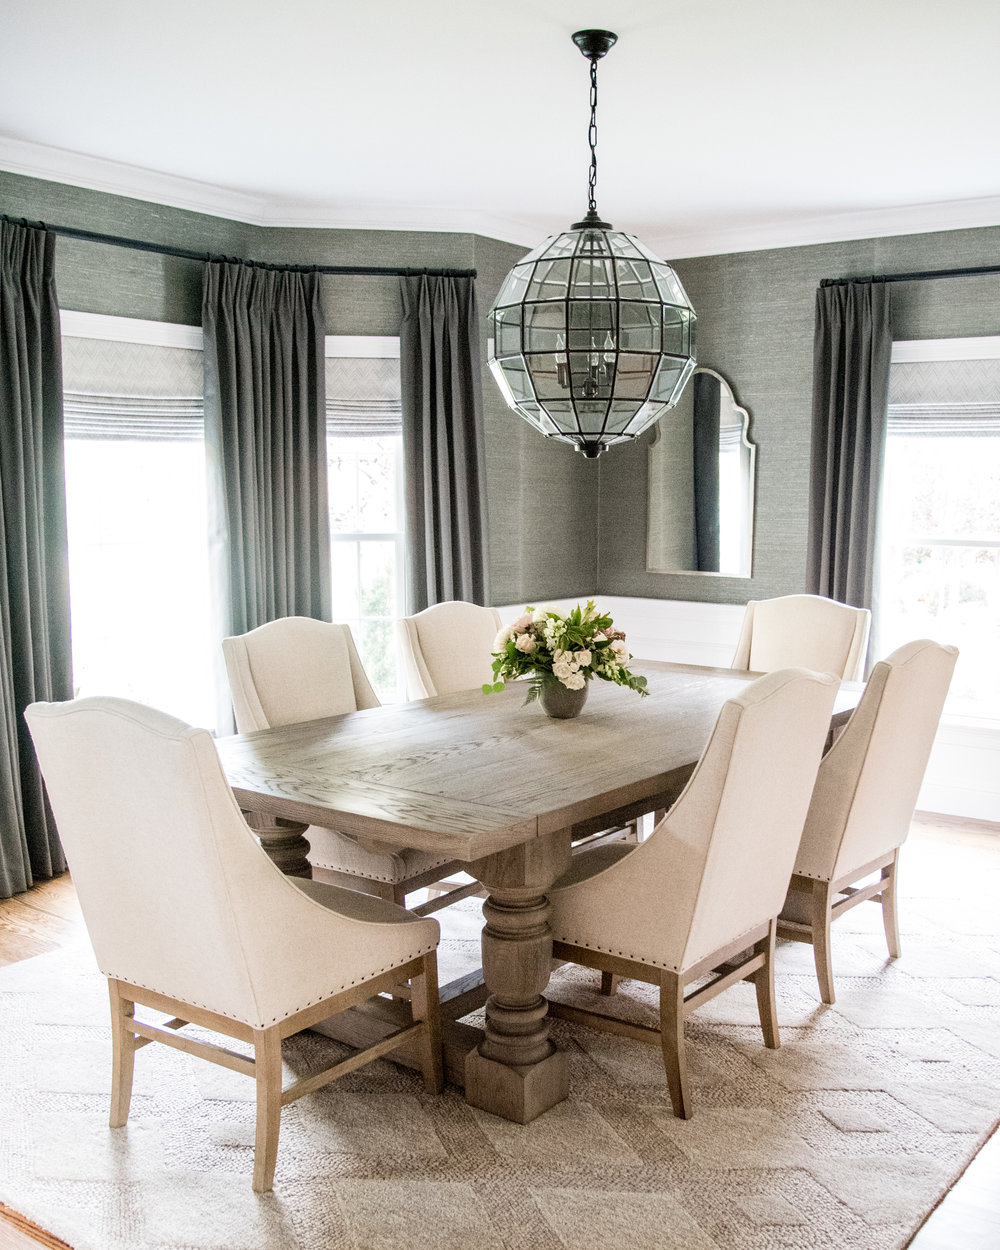 little meadow  gina baran interiors and design dining room luxury designer